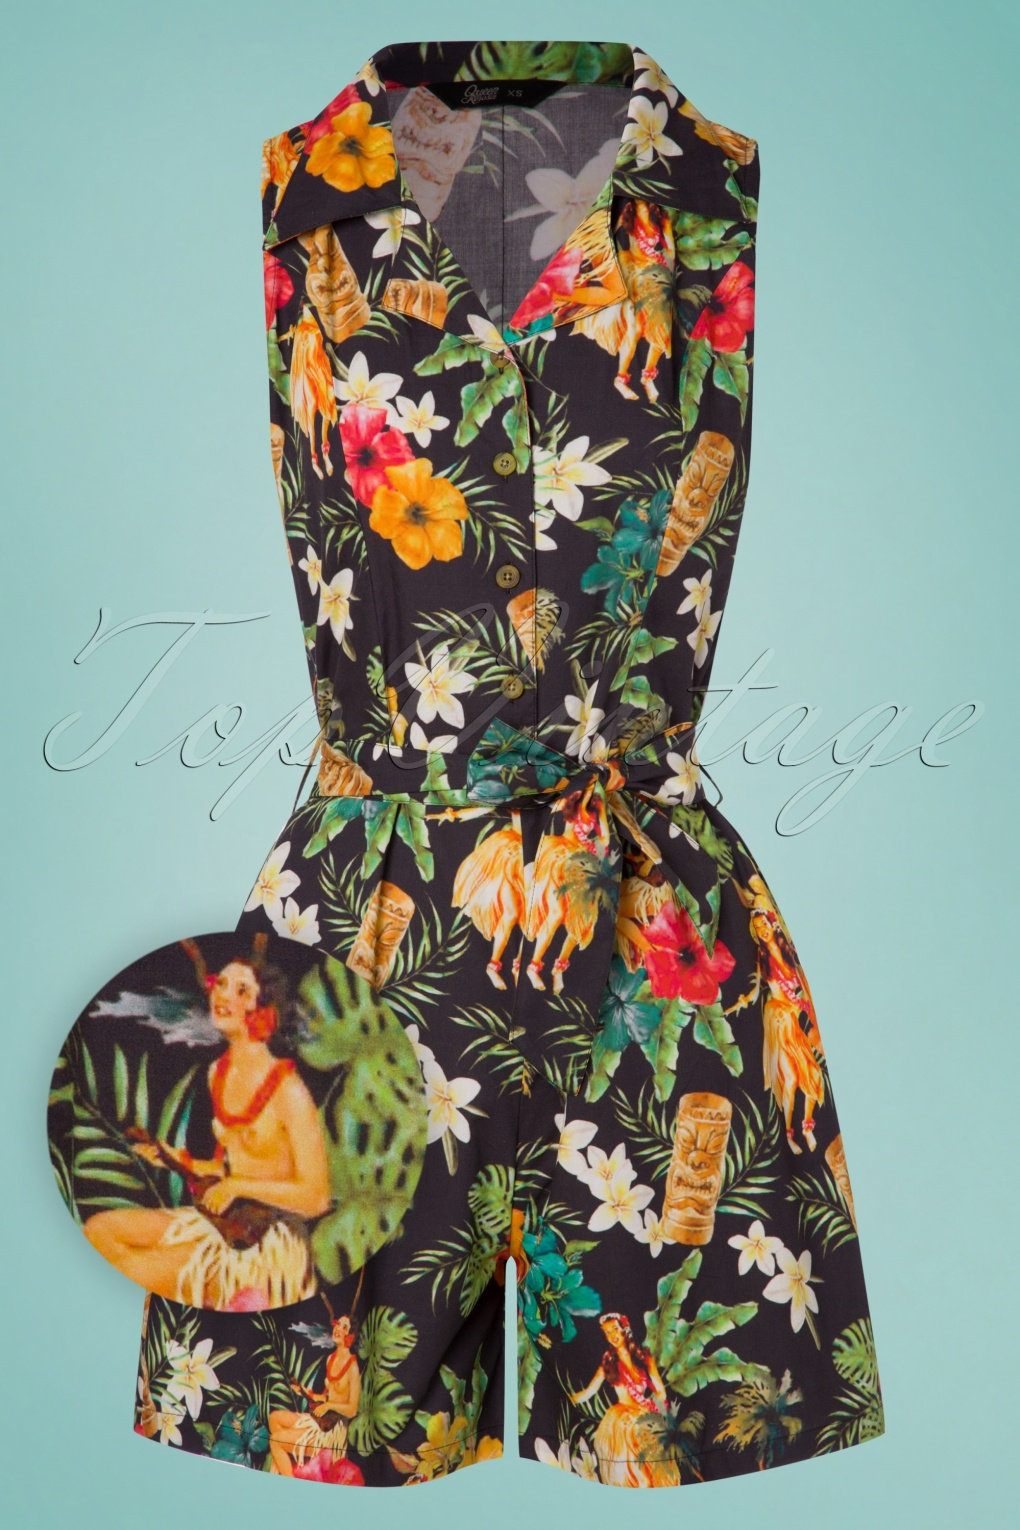 Vintage Rompers, Playsuits | Retro, Pin Up, Rockabilly Playsuits 50s Mambo Jumpsuit in Black £71.61 AT vintagedancer.com